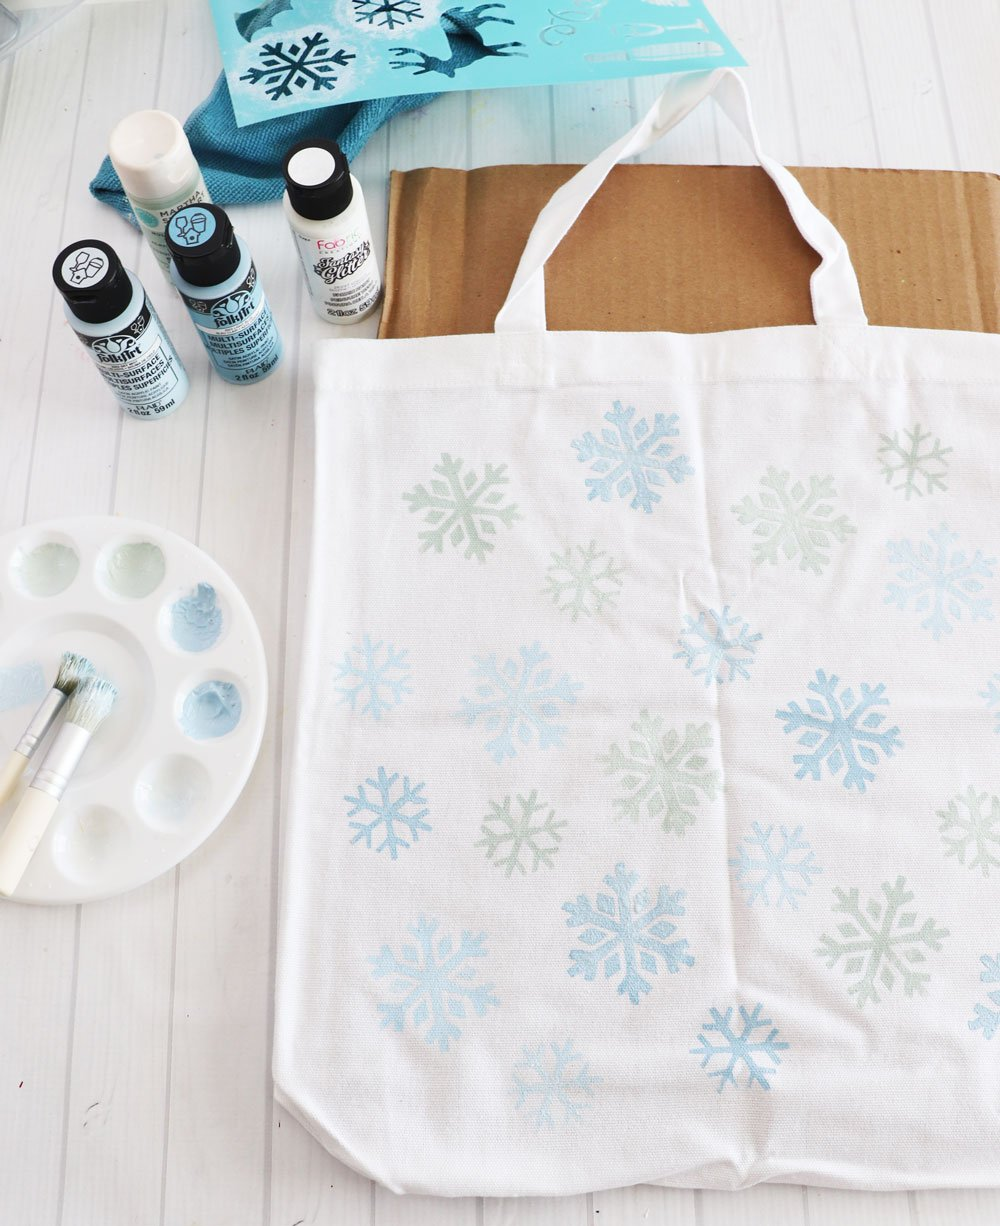 painted tote with snowflakes